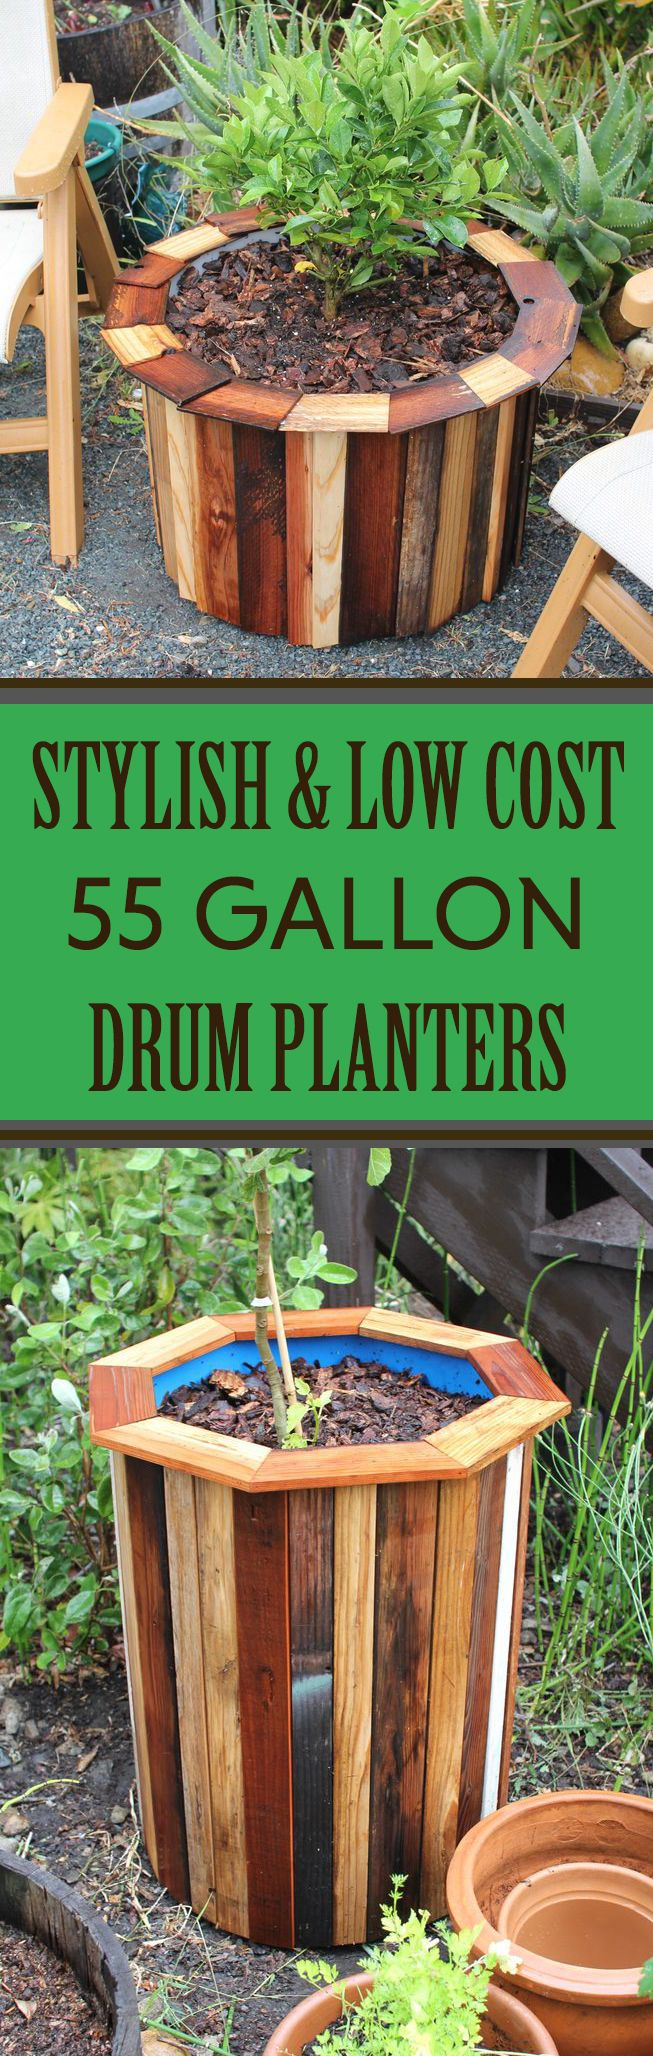 Jazz up plastic drums to make stylish planters.